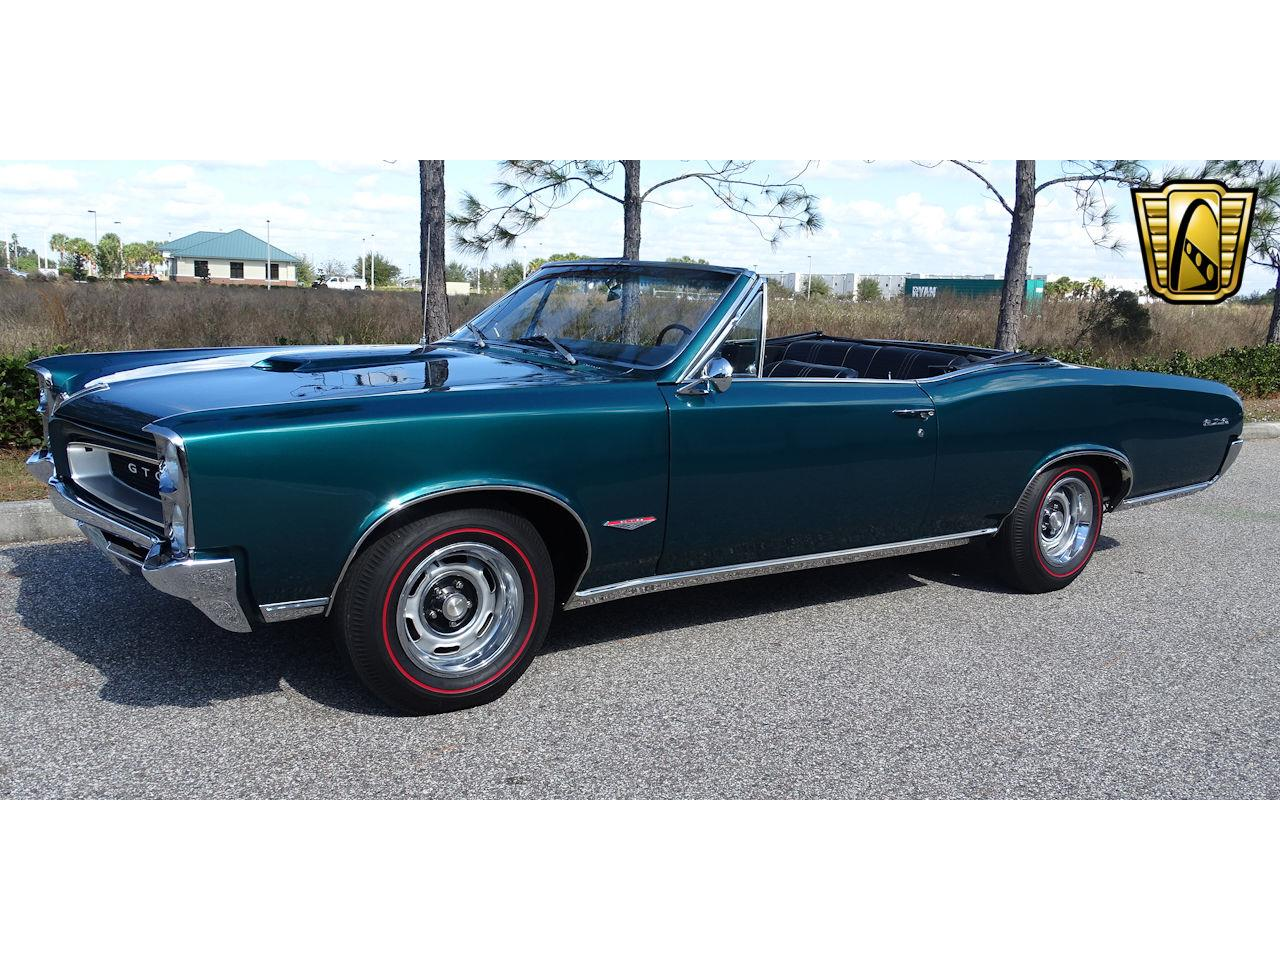 Large Picture of Classic '66 Pontiac GTO located in Ruskin Florida - $59,000.00 Offered by Gateway Classic Cars - Tampa - MF43